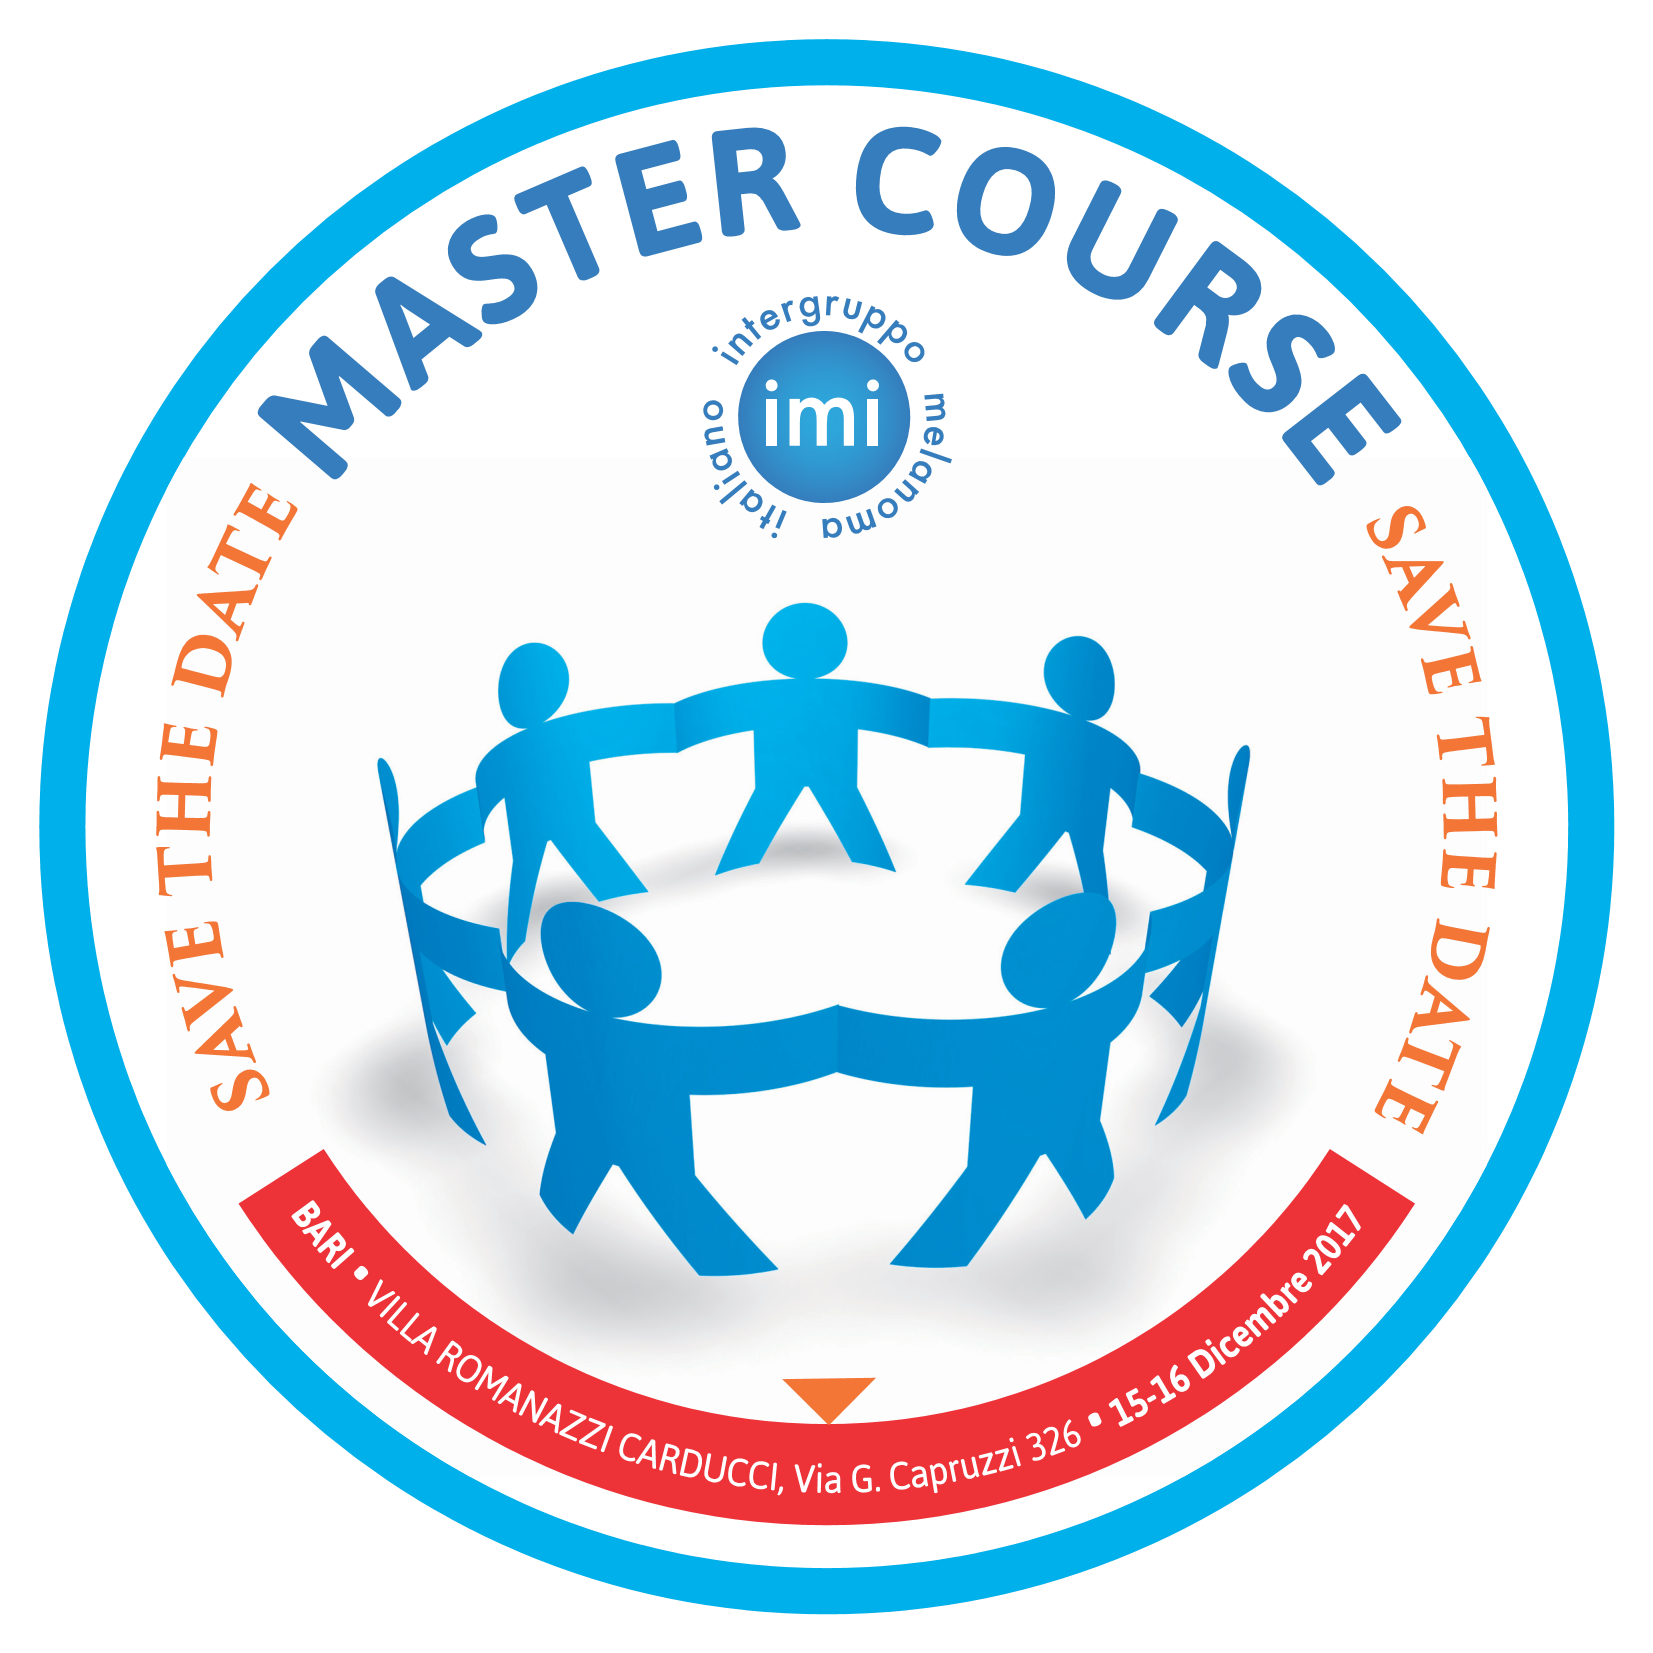 IMI Save The Date Master Course BARI